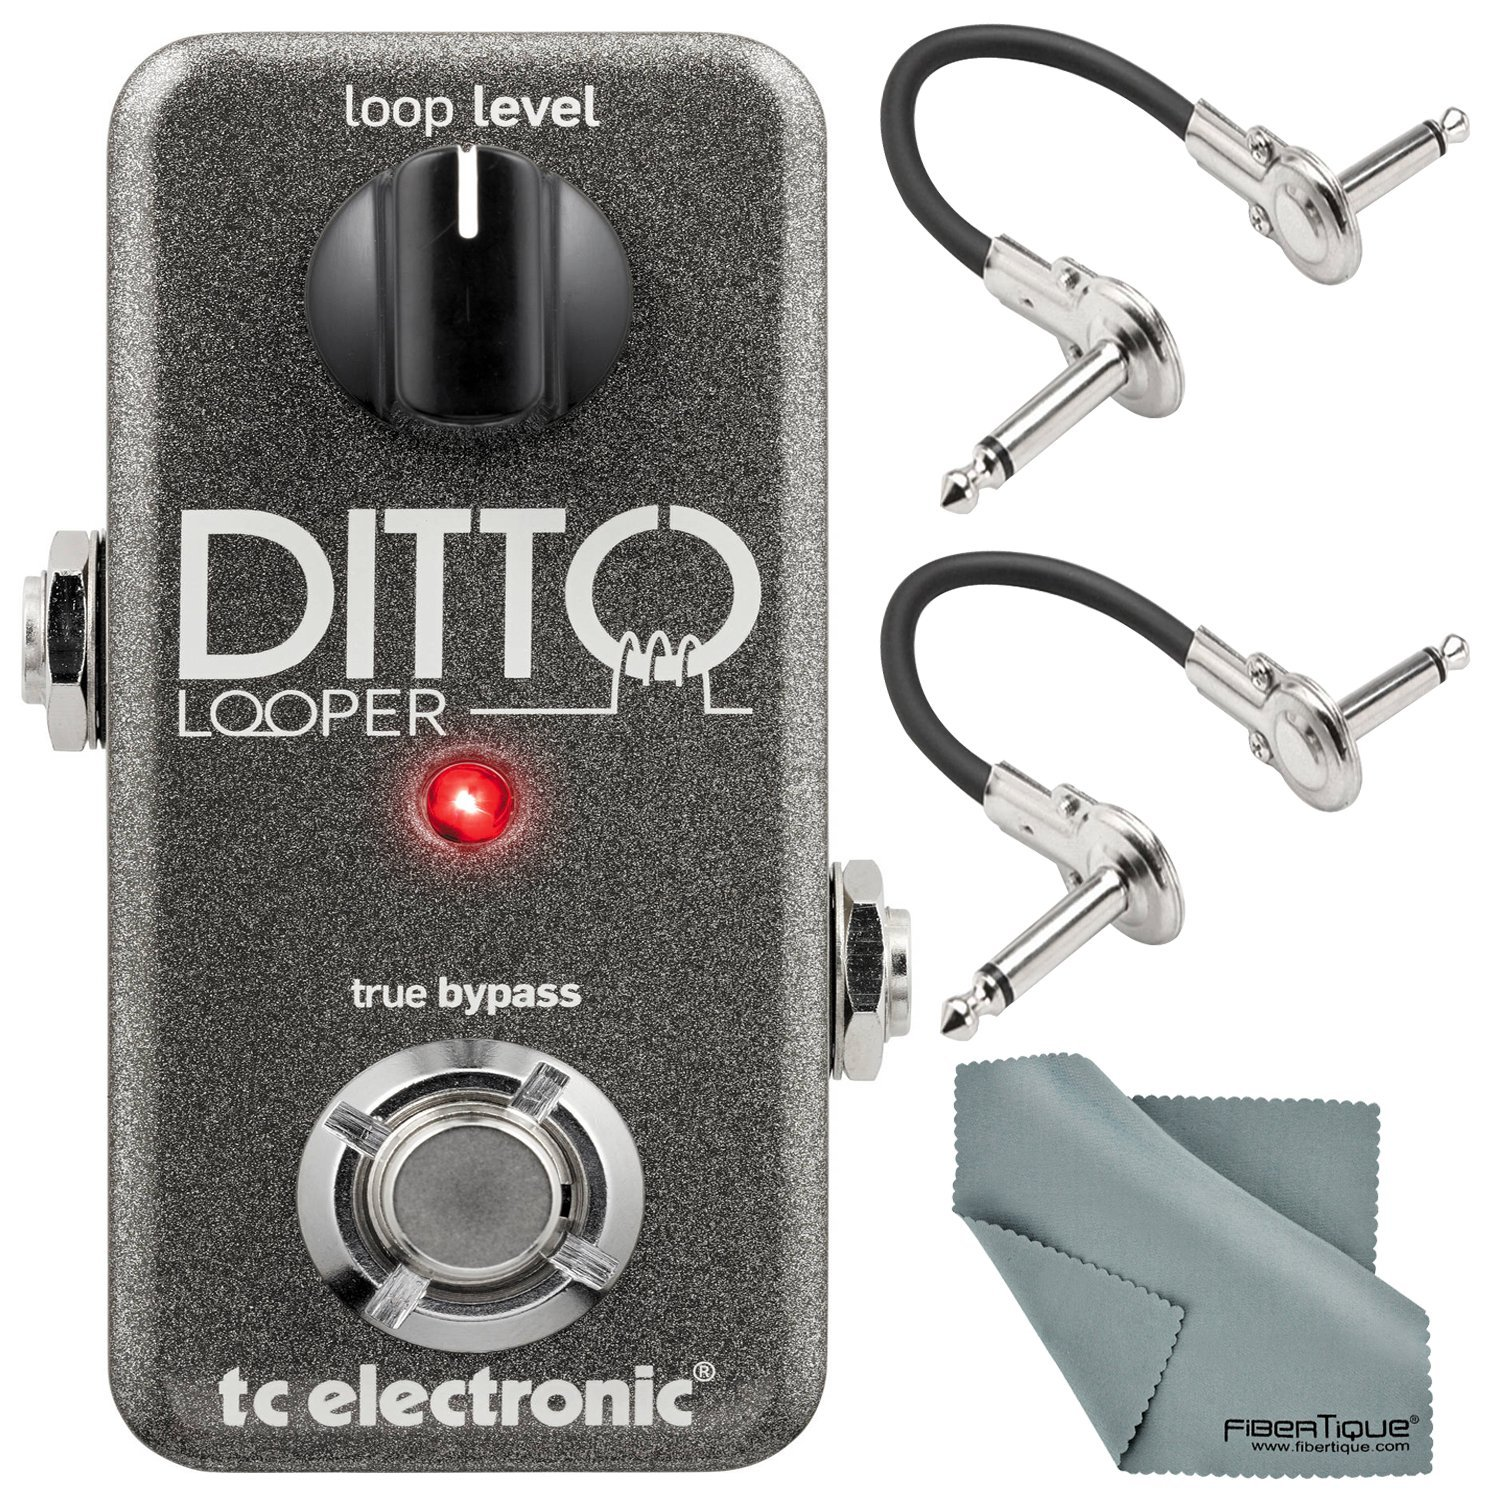 TC Electronic Ditto Looper Effects Pedal and Accessory Bundle with Cables + Fibertique Cleaning Cloth